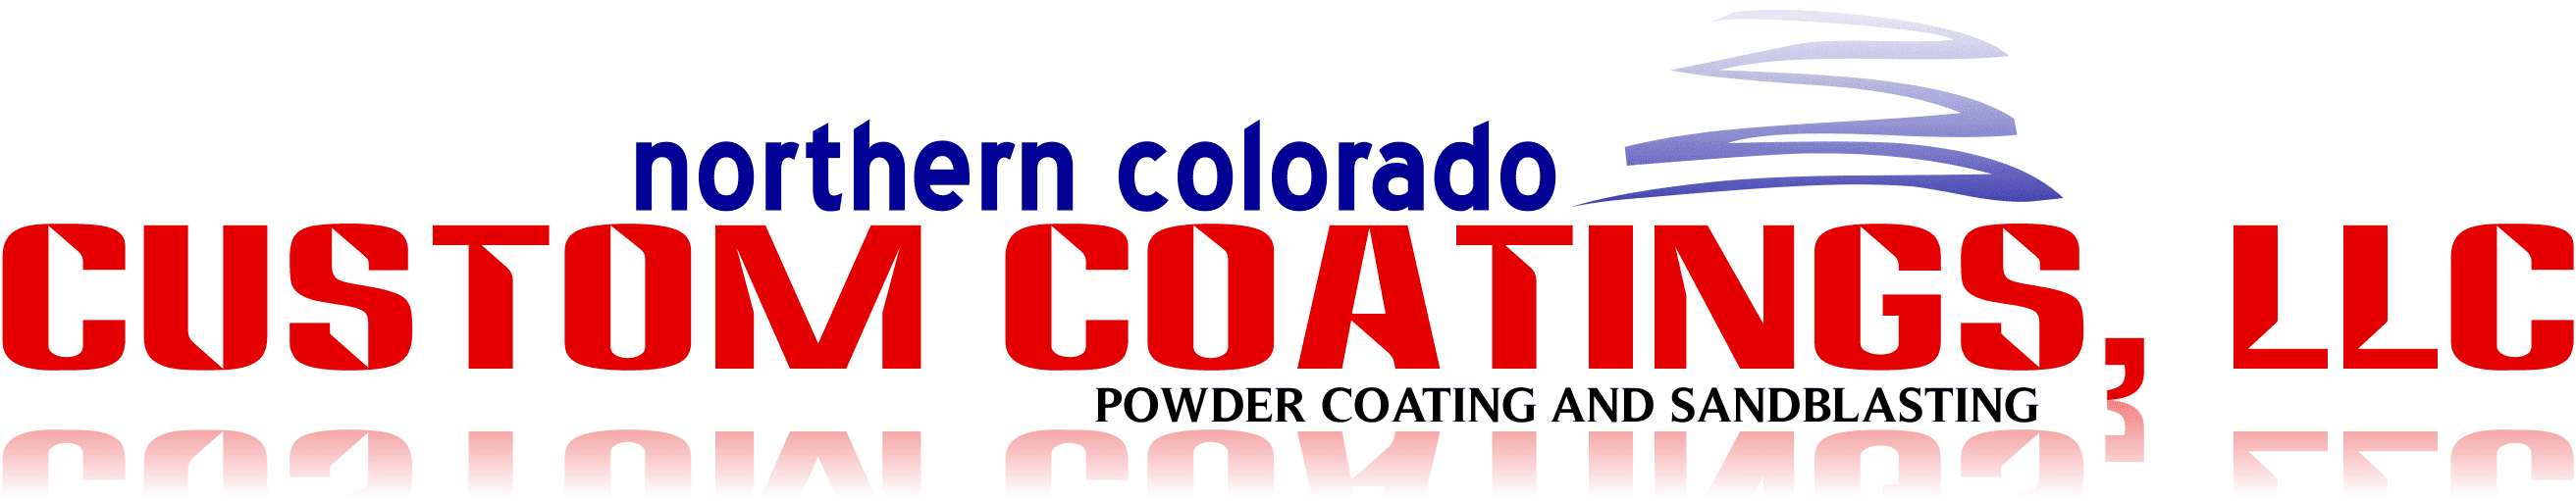 Northern Colorado Custom Coating - Logo